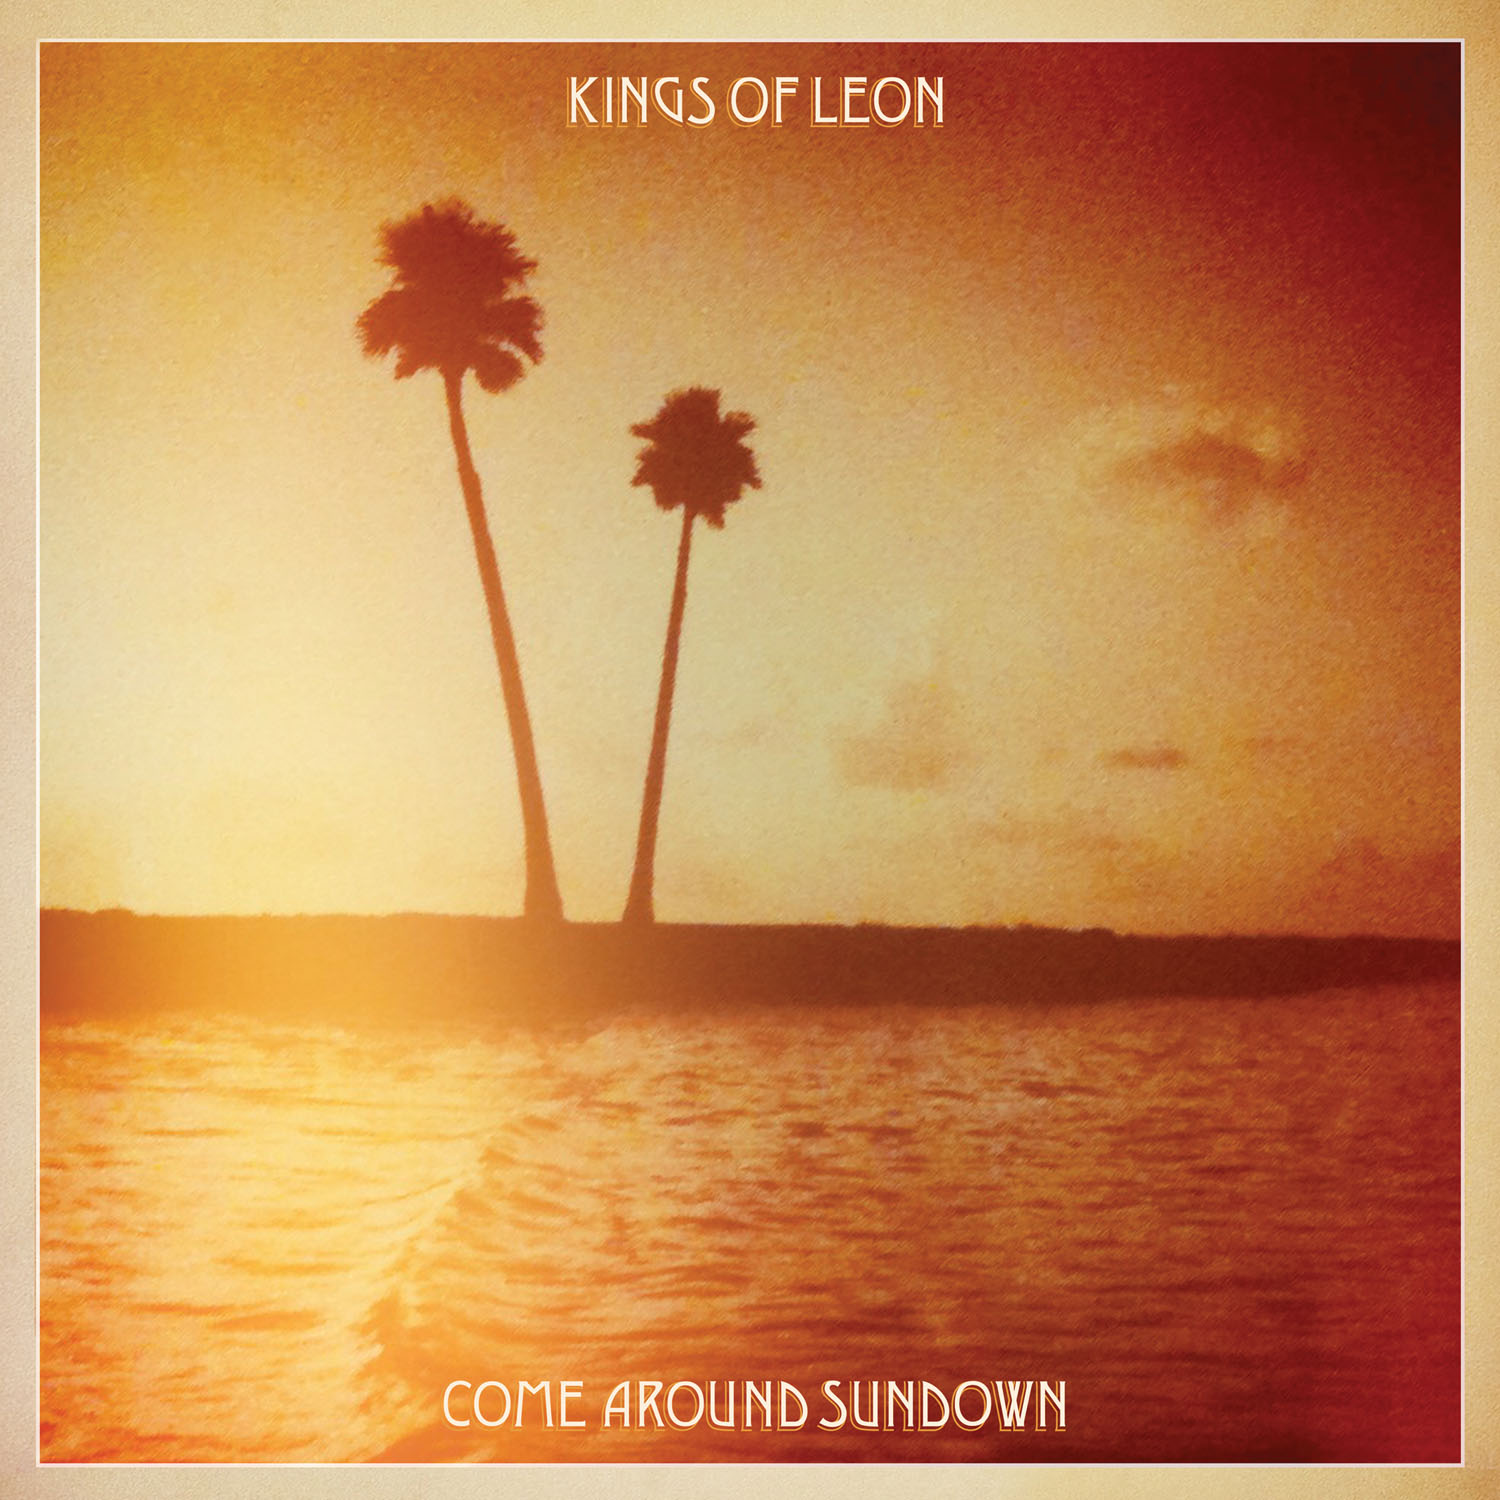 Kings Of Leon - Come Around Sundown (Extended Version) Cover